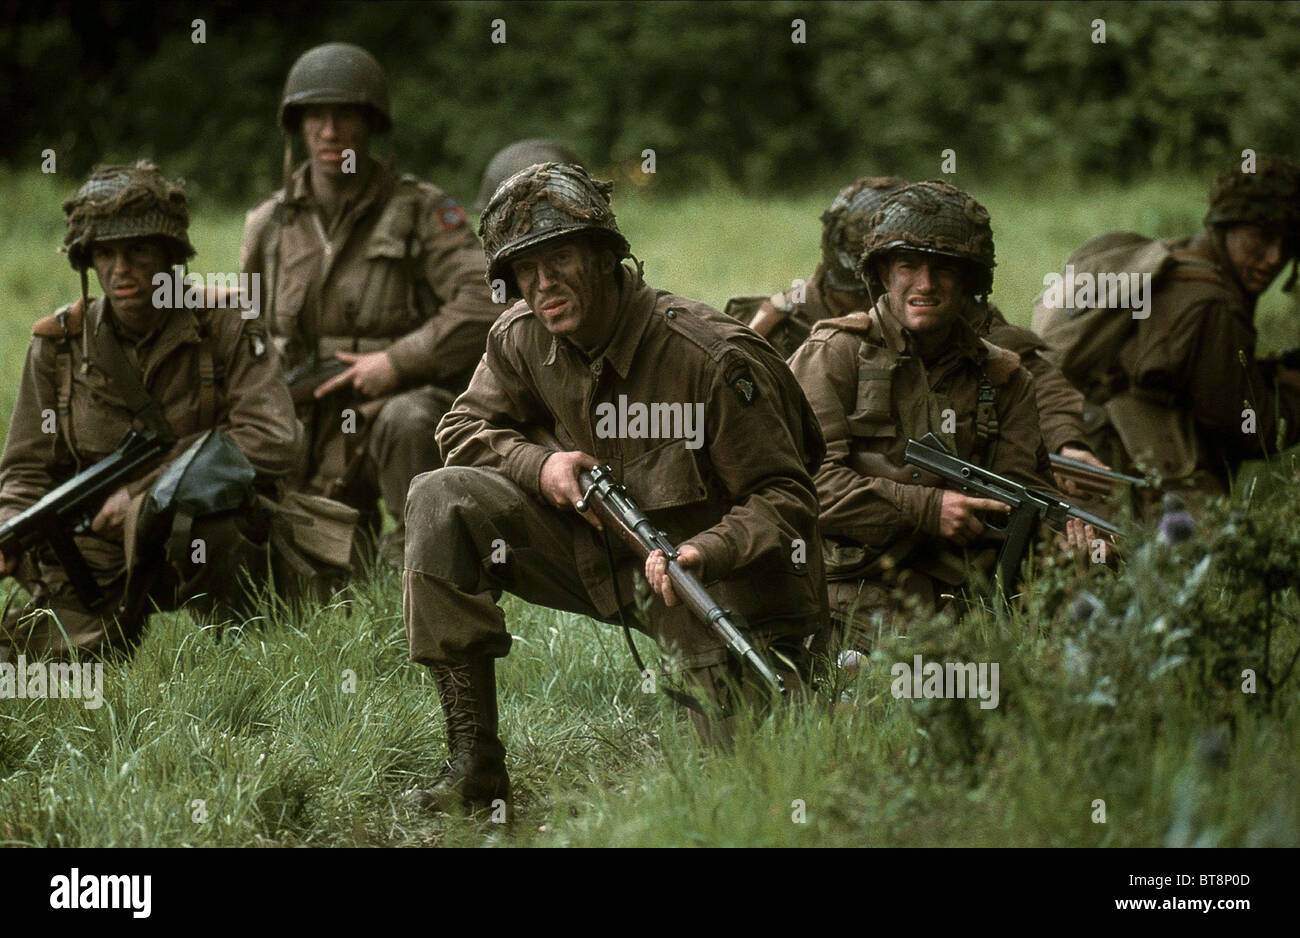 DAMIAN LEWIS FRANK JOHN HUGHES BAND OF BROTHERS (2001) - Stock Image